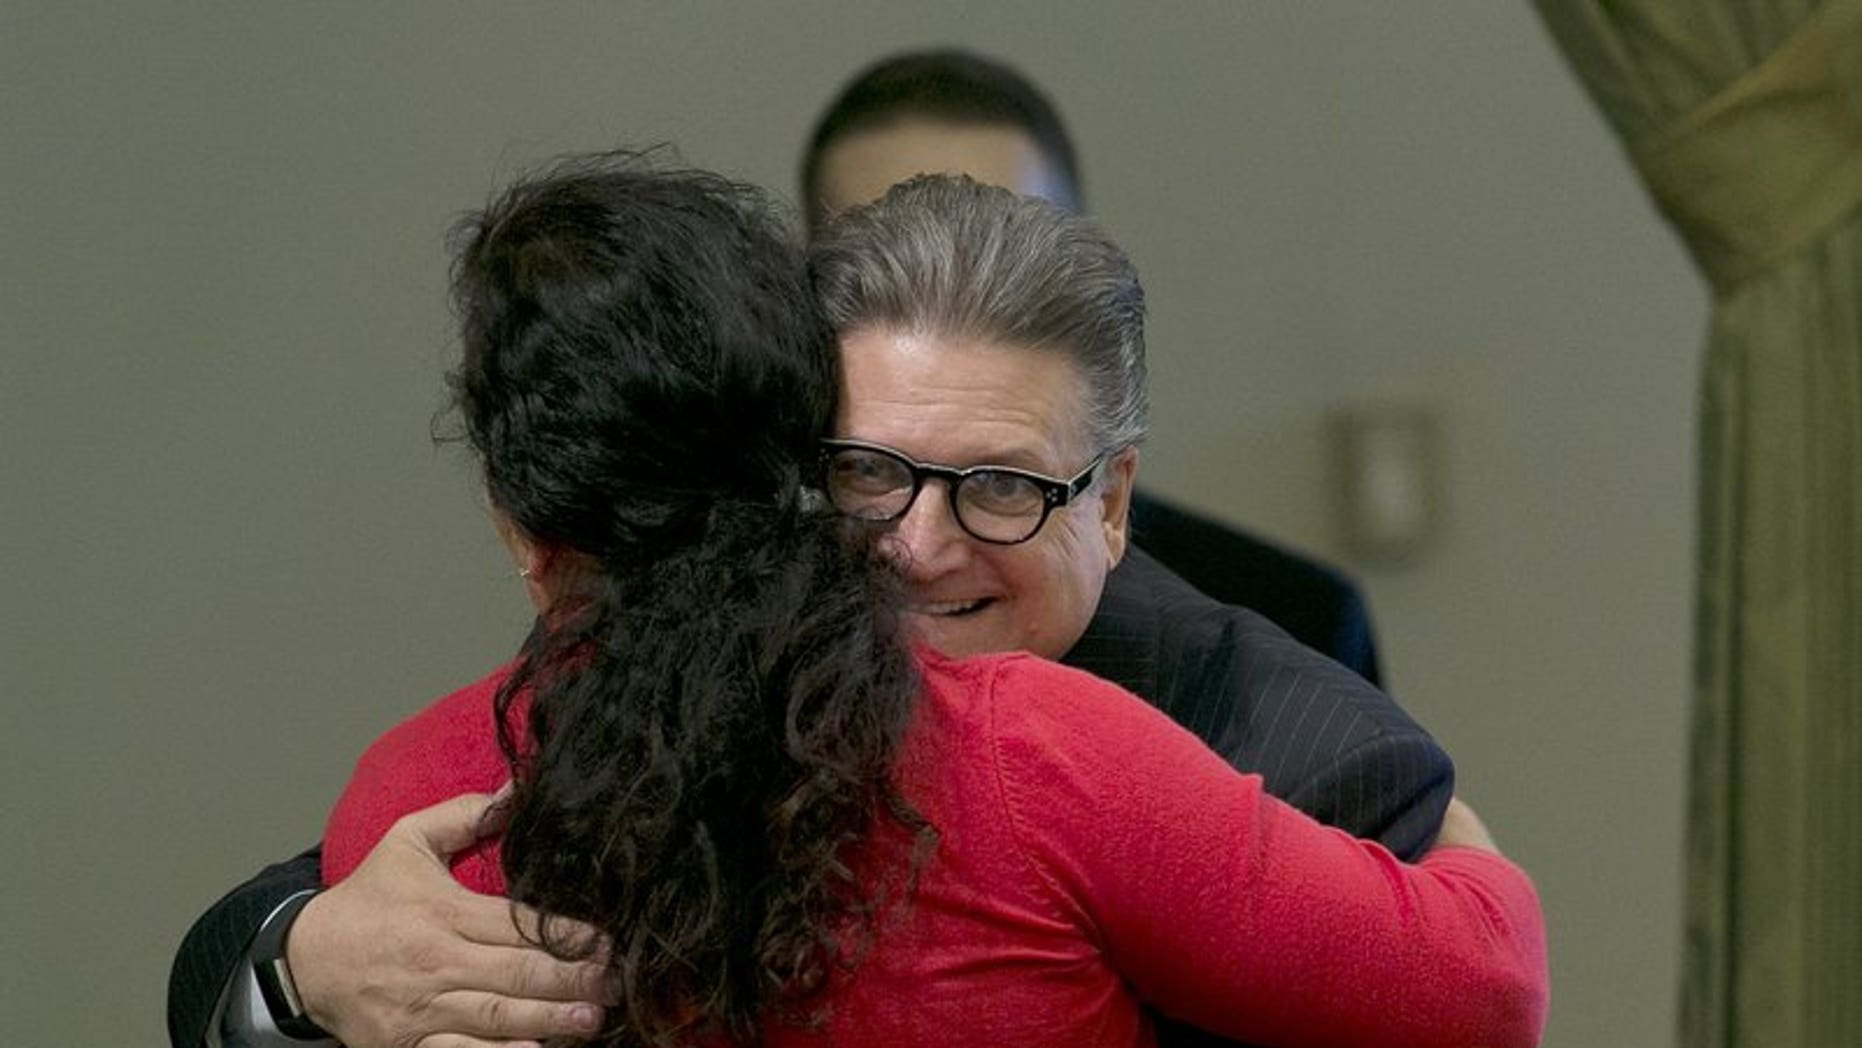 California state Sen. Bob Hertzberg hugs Assemblywoman Lorena Gonzalez Fletcher, D-San Diego, after his storm water bill was approved by the Assembly in Sacramento, Calif., Aug. 31, 2017.